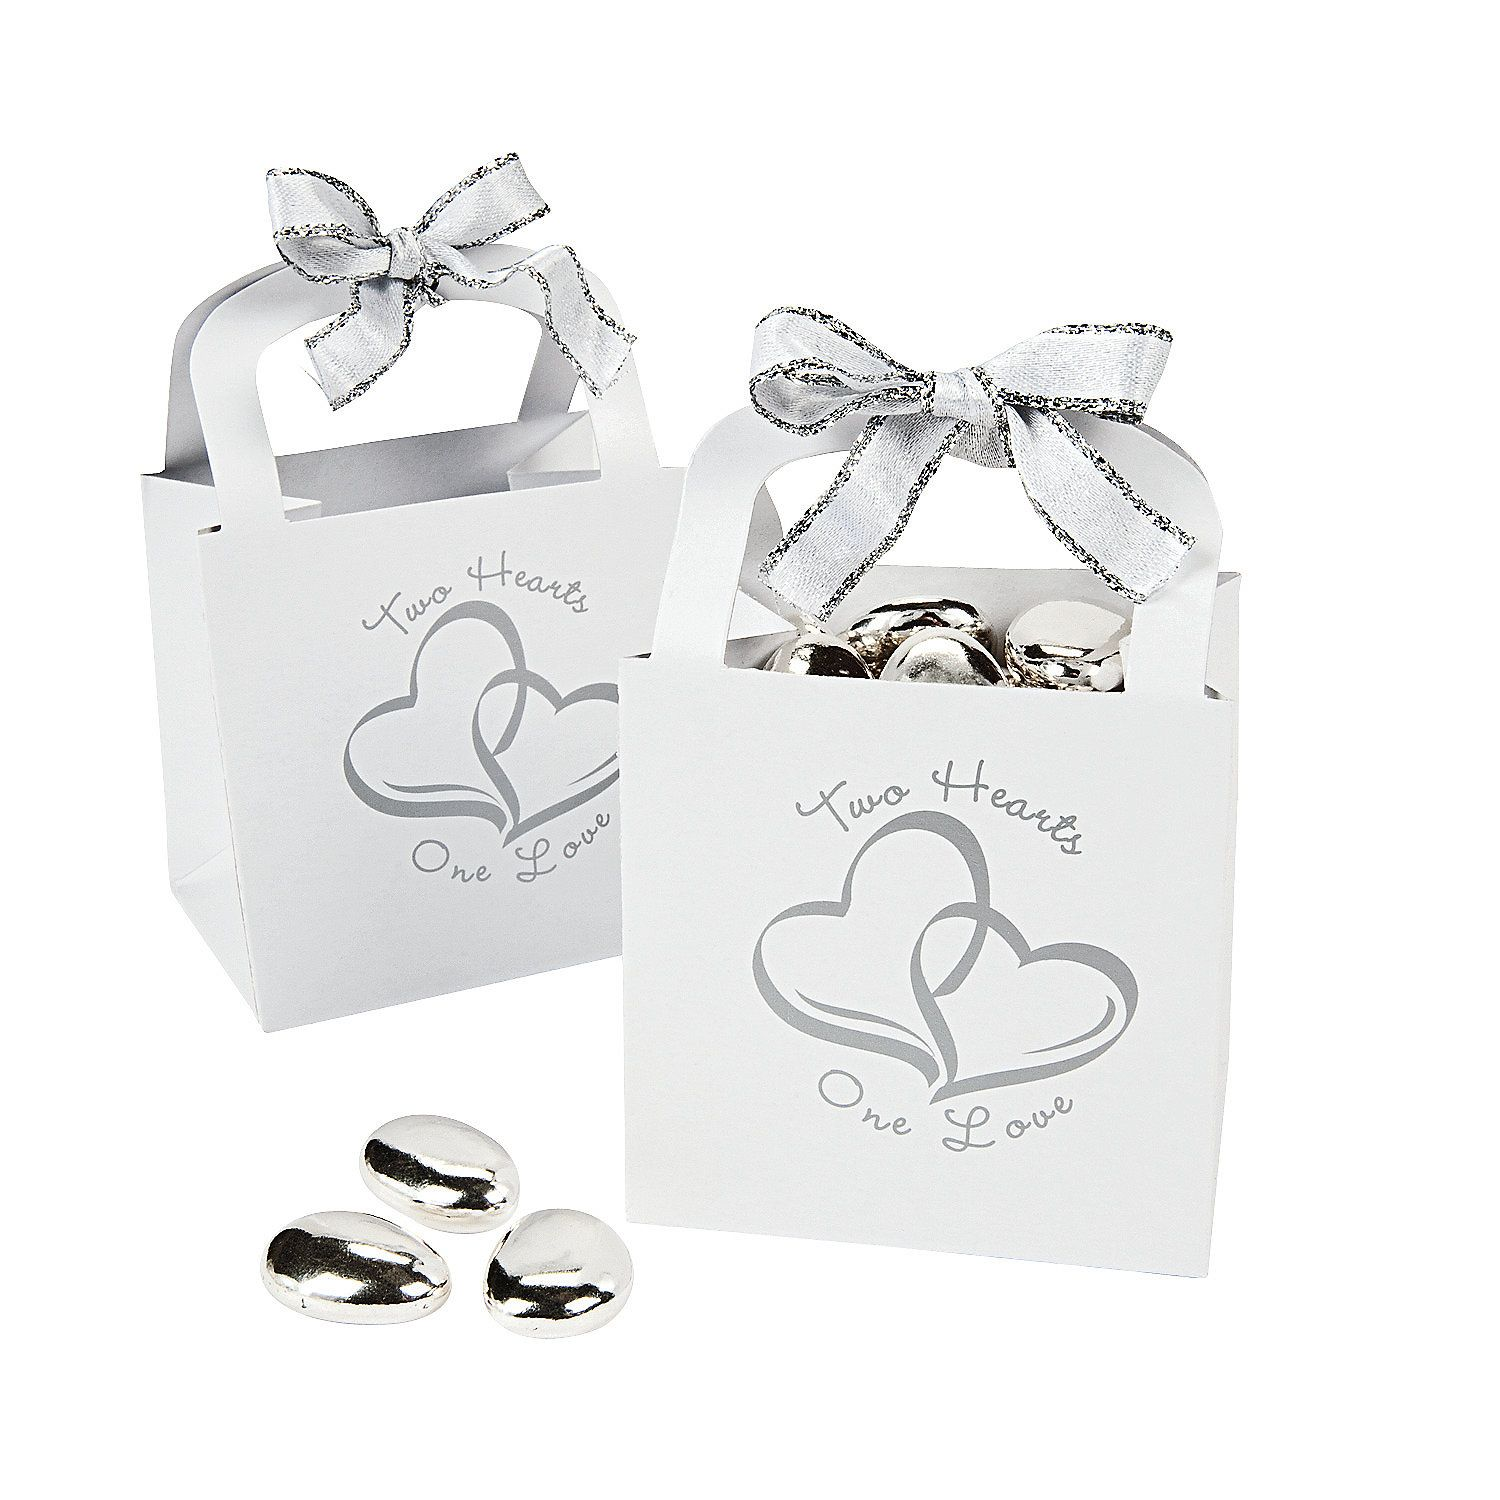 Two Hearts Wedding Favor Gift Baskets | Favors, Gift and Weddings